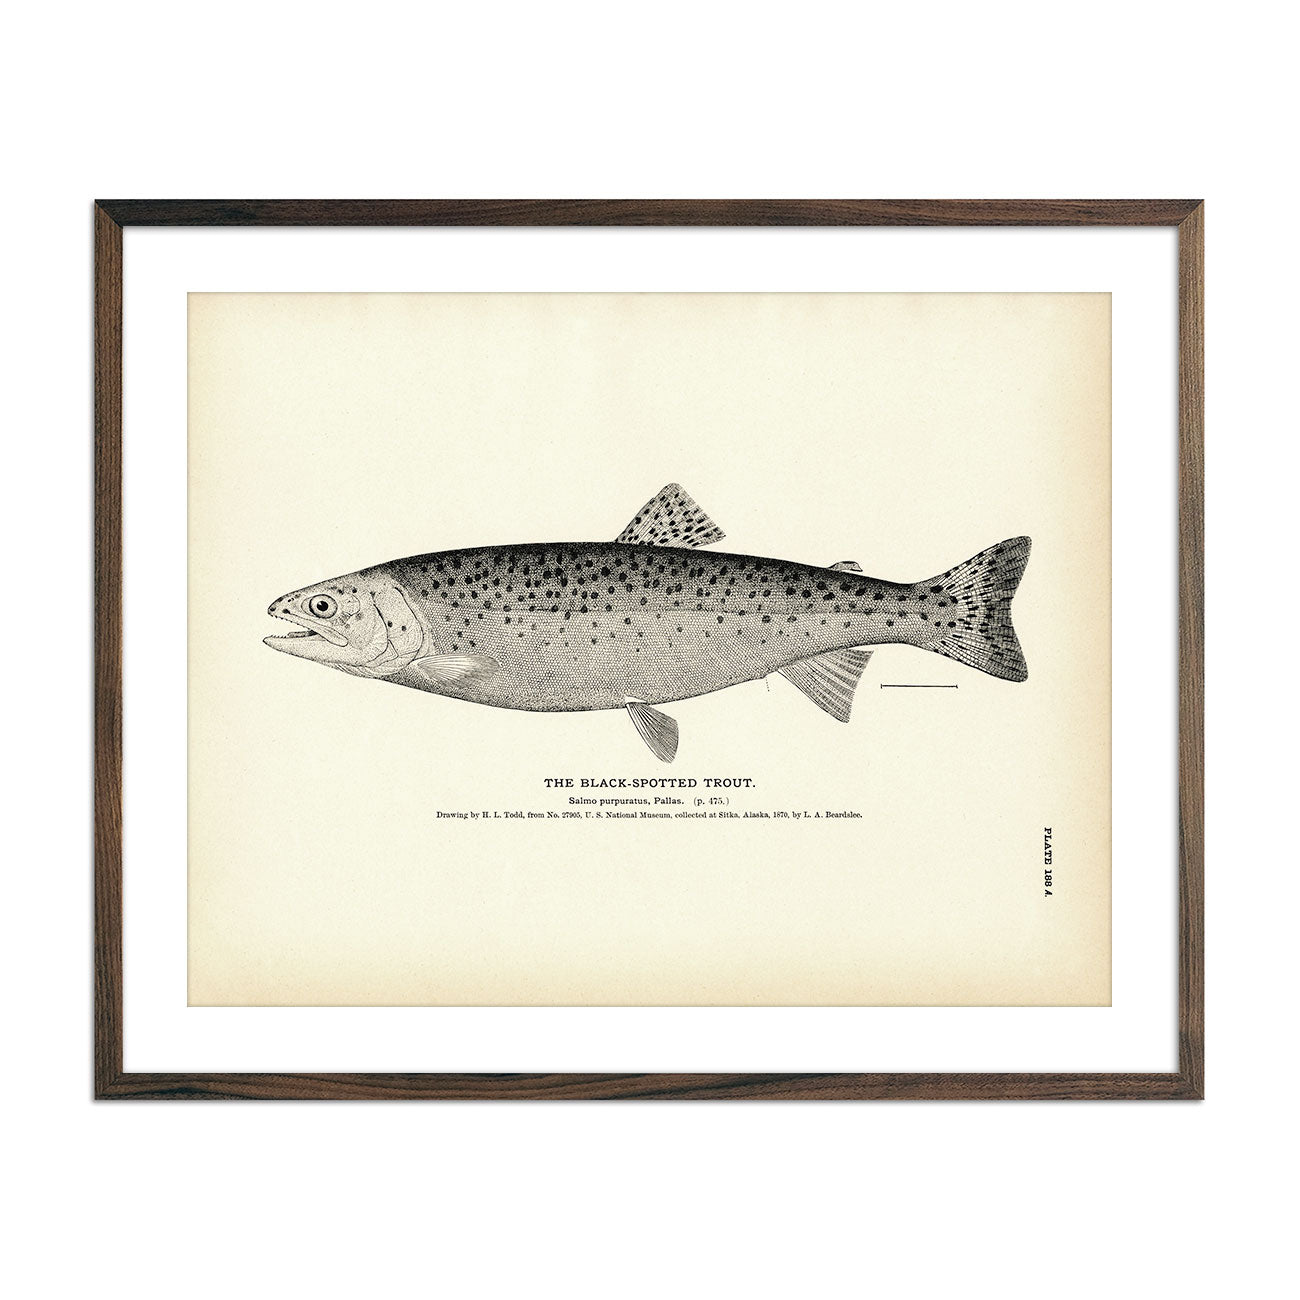 Vintage Black-Spotted Trout fish print